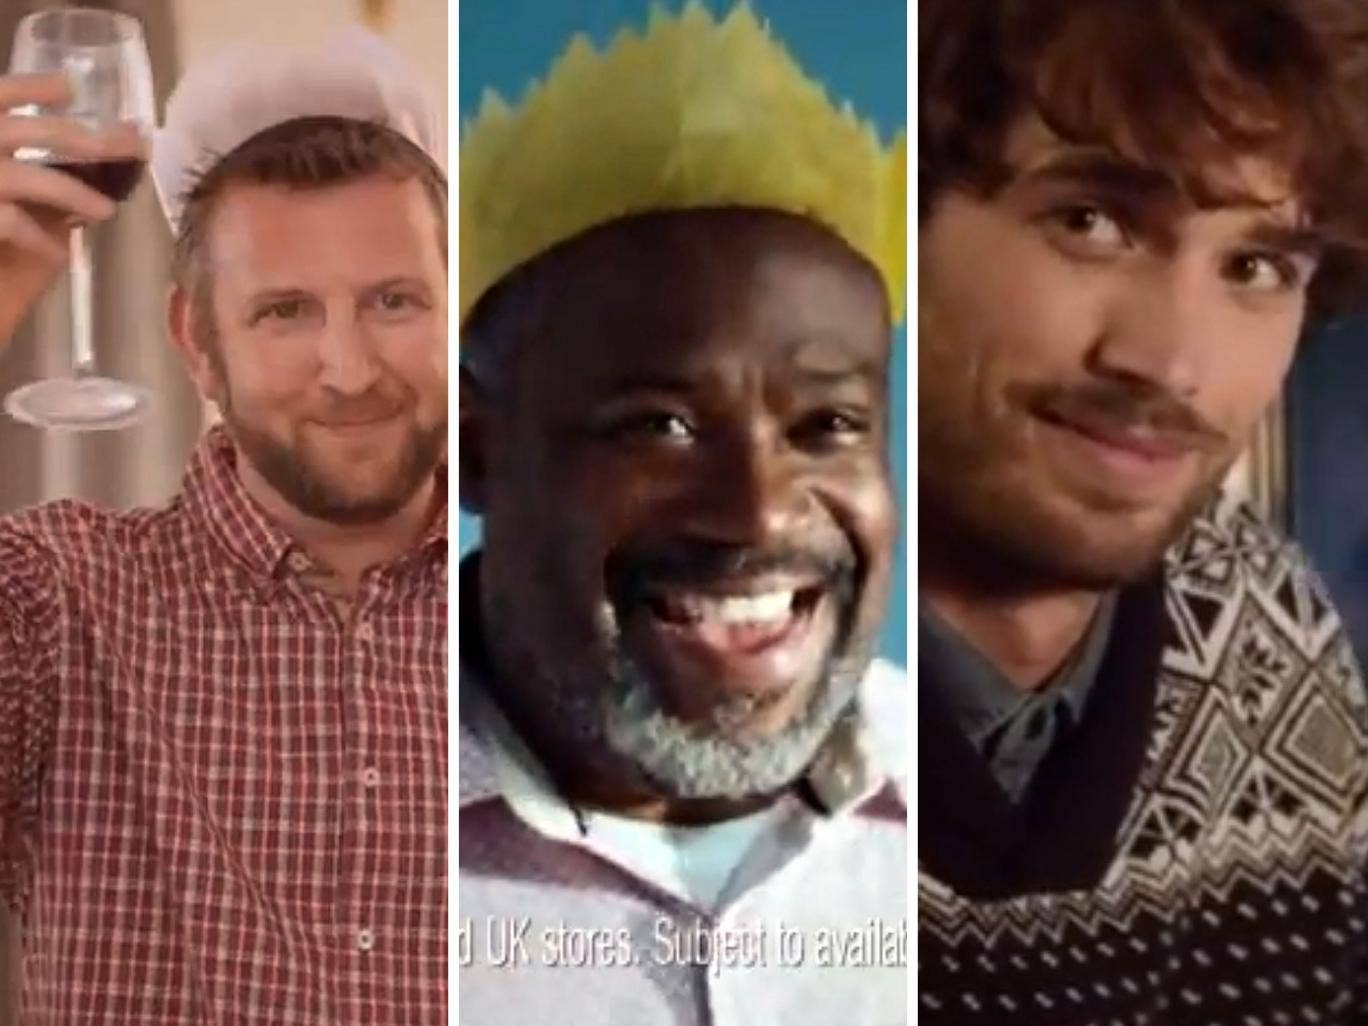 Asda, Tesco and Debenhams are just a few of the retailers using blokes with beards in TV ads